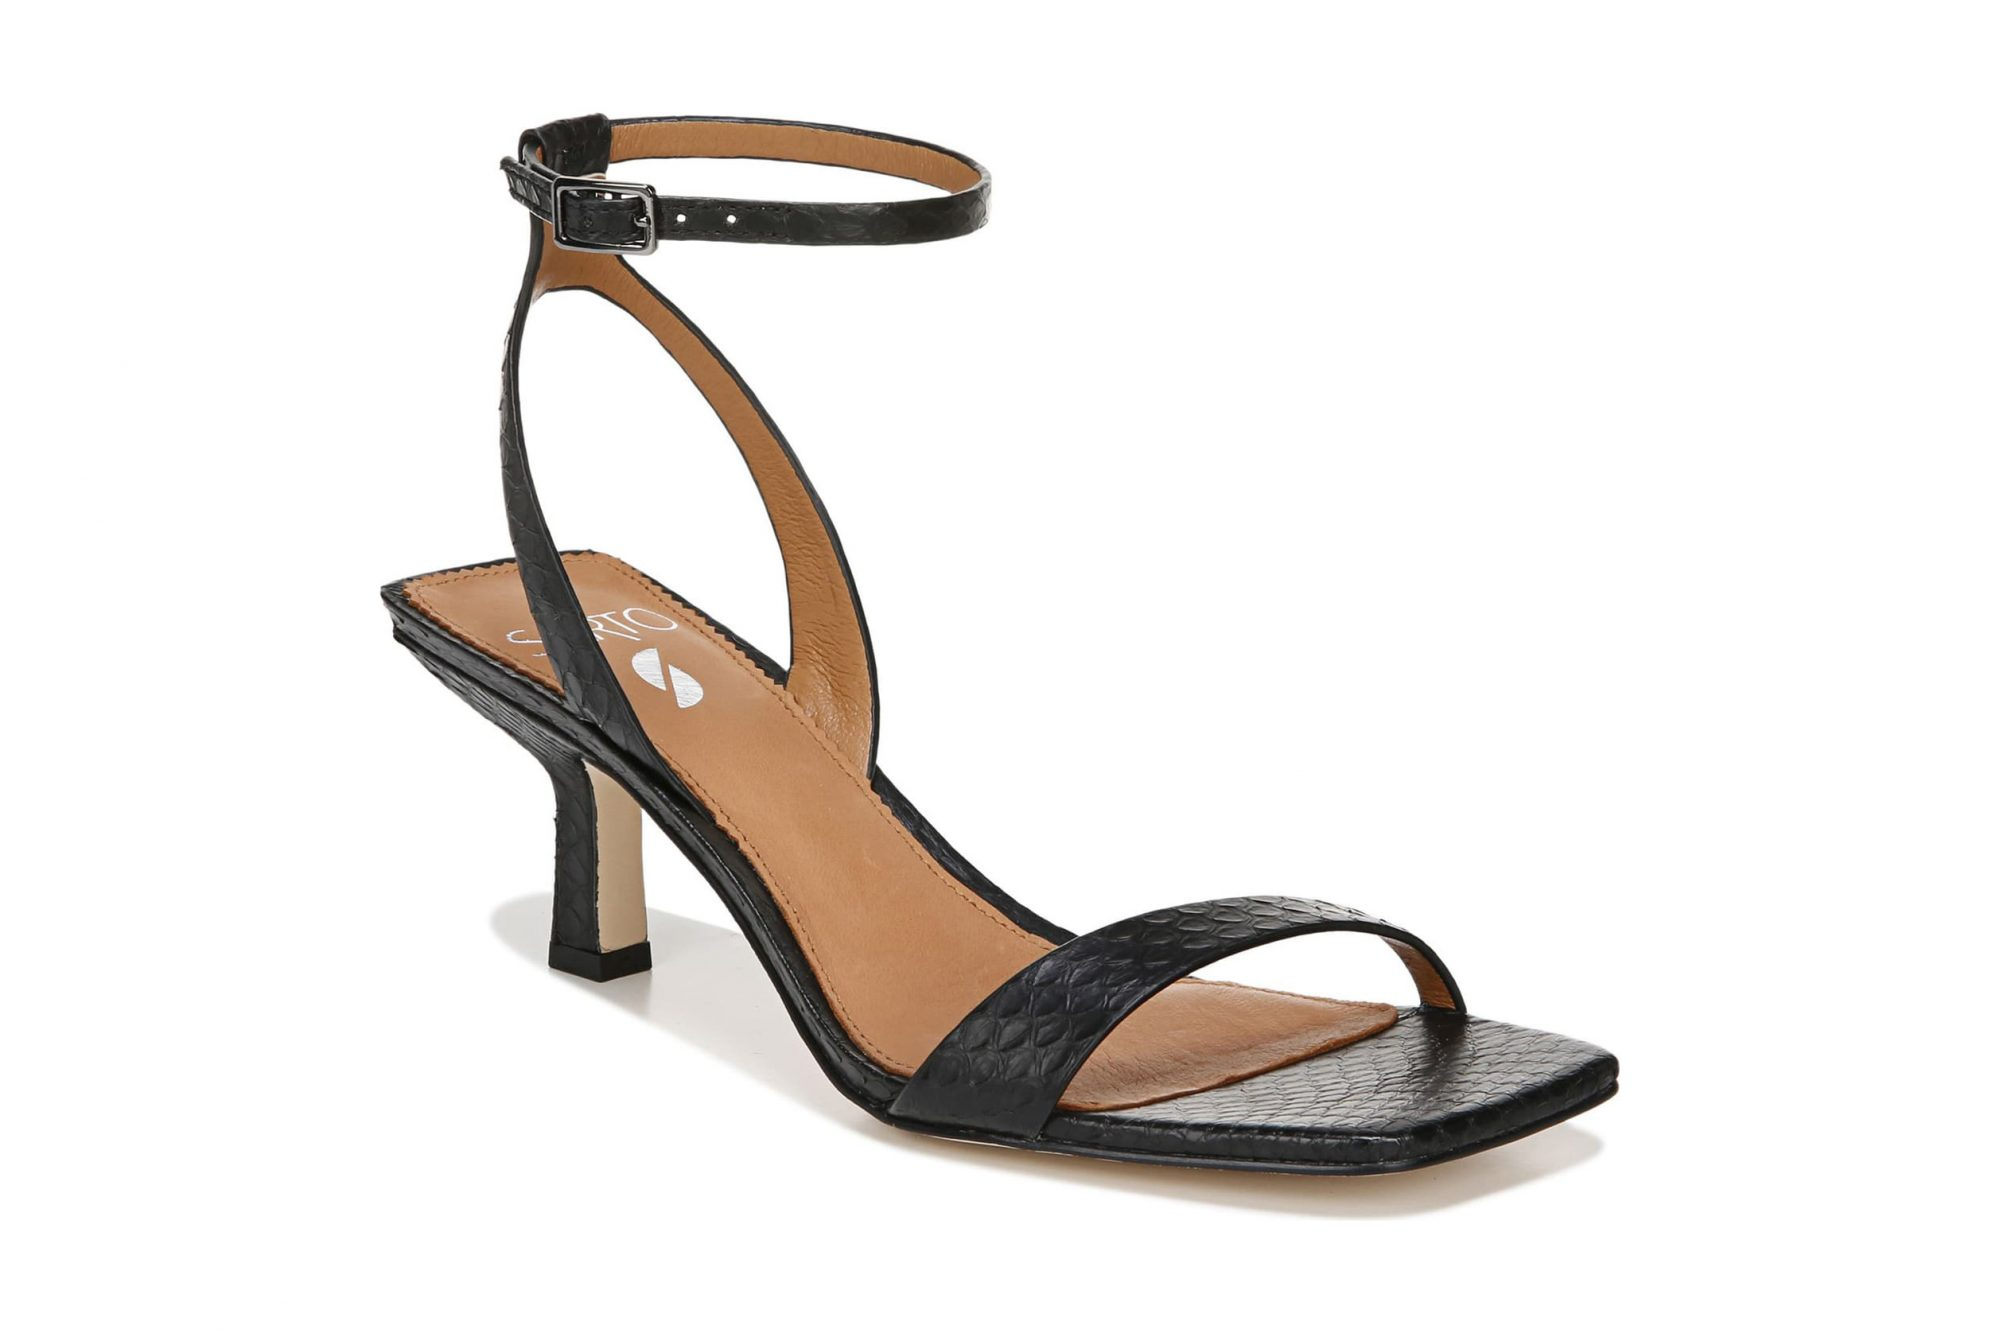 squared toed heels shoe trends 2020